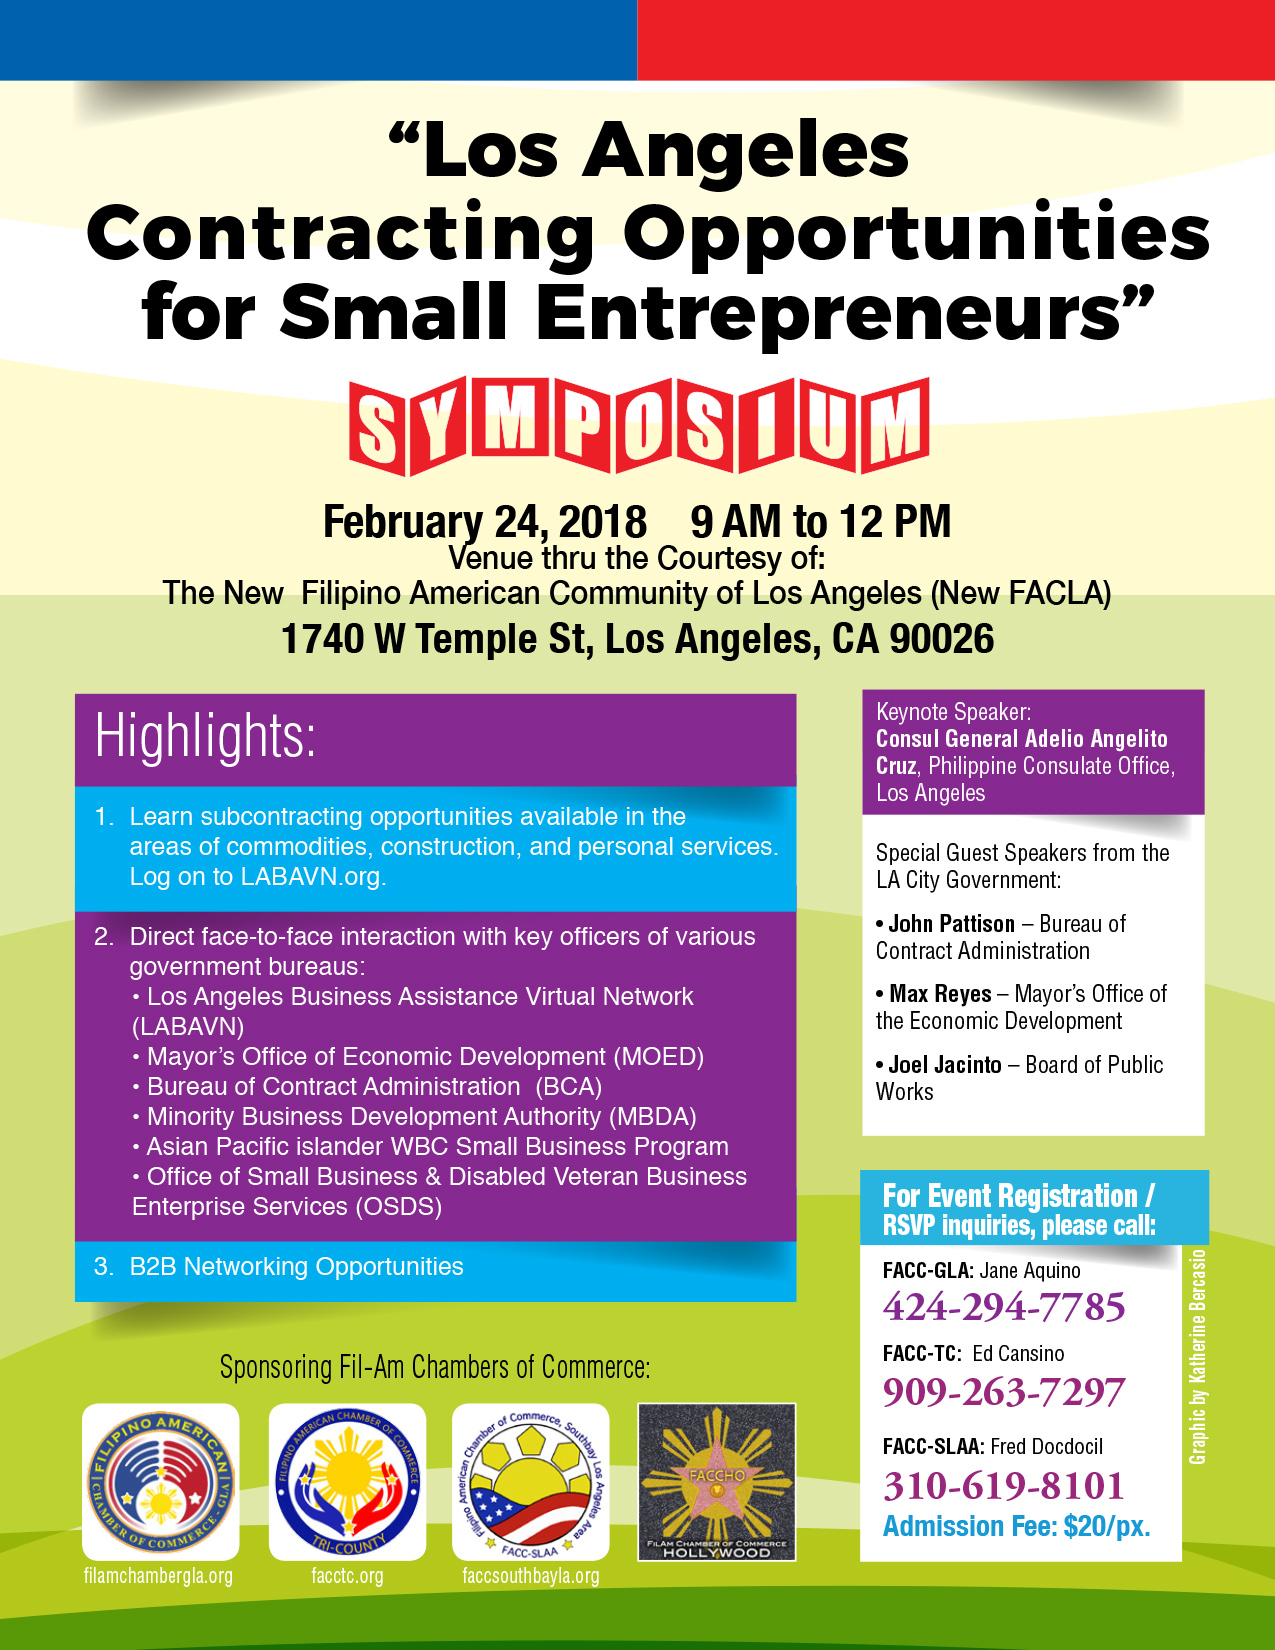 Los Angeles Contracting Opportunities For Small